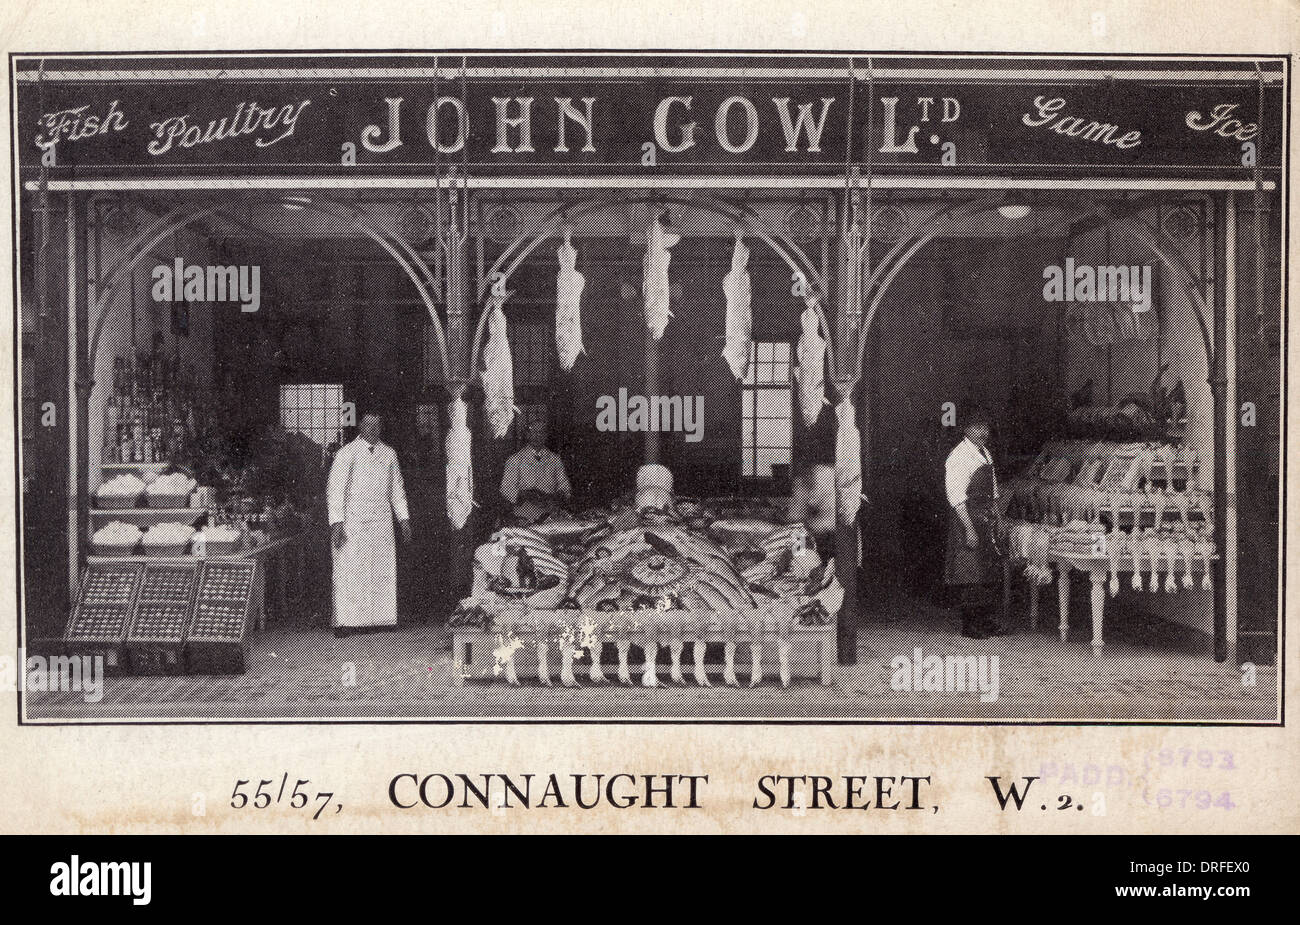 John Gow Ltd - Conaught Street - Stock Image